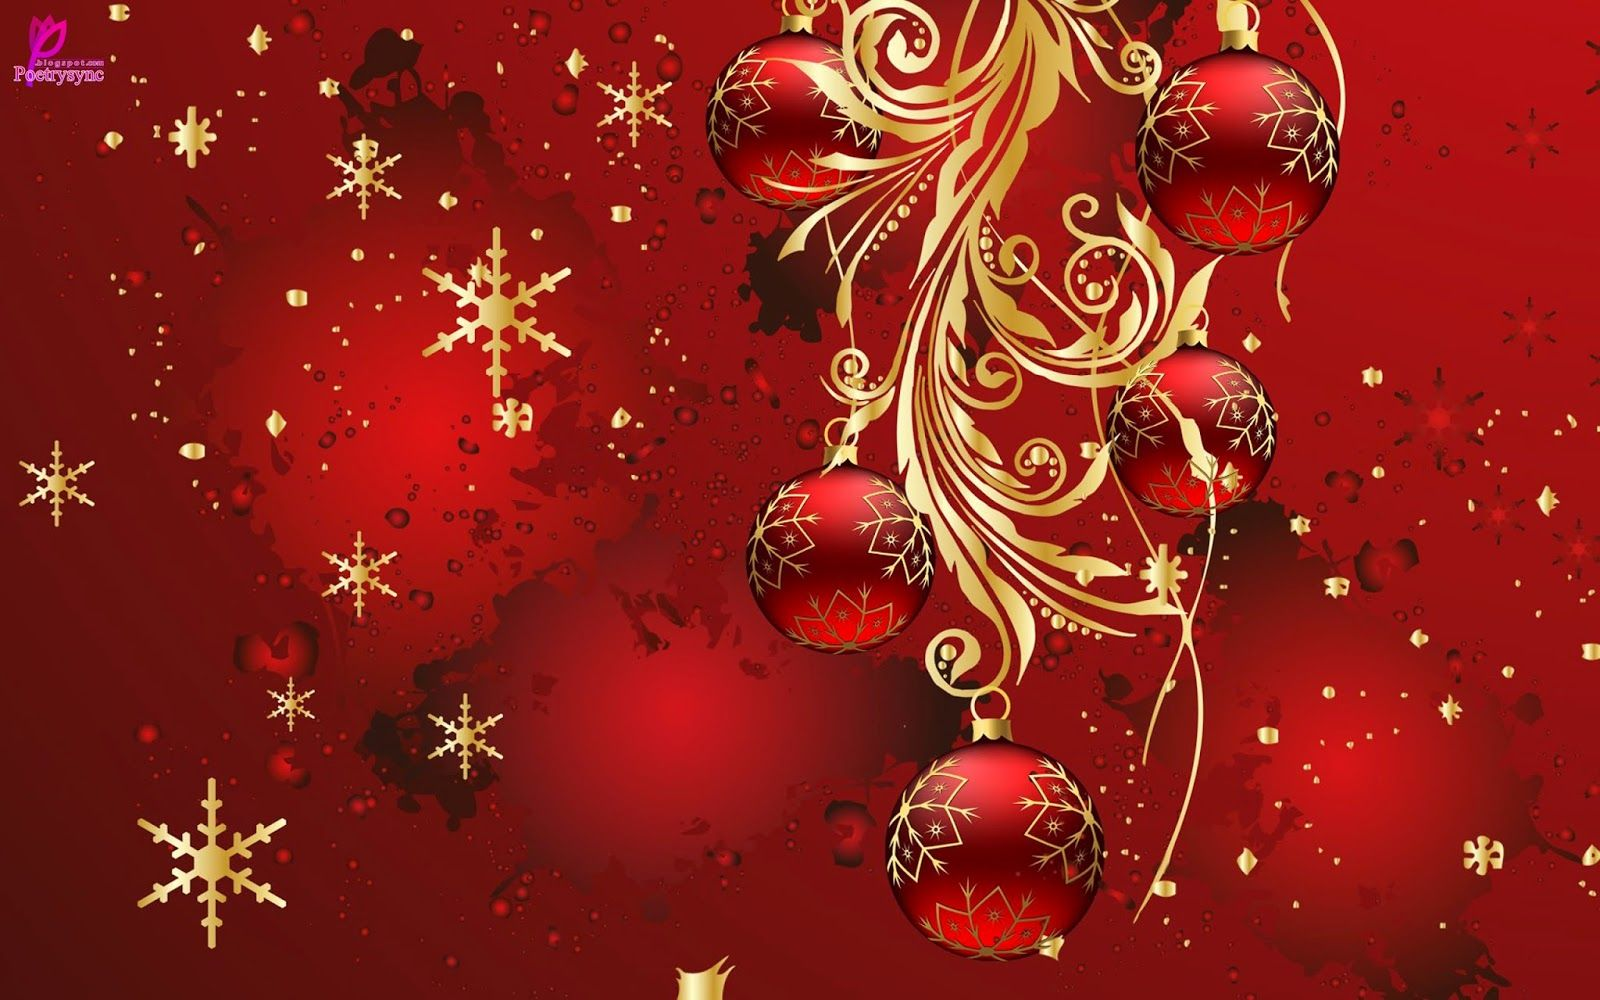 Merry christmas images yahoo image search results christmas hd desktop kristyandbryce Gallery